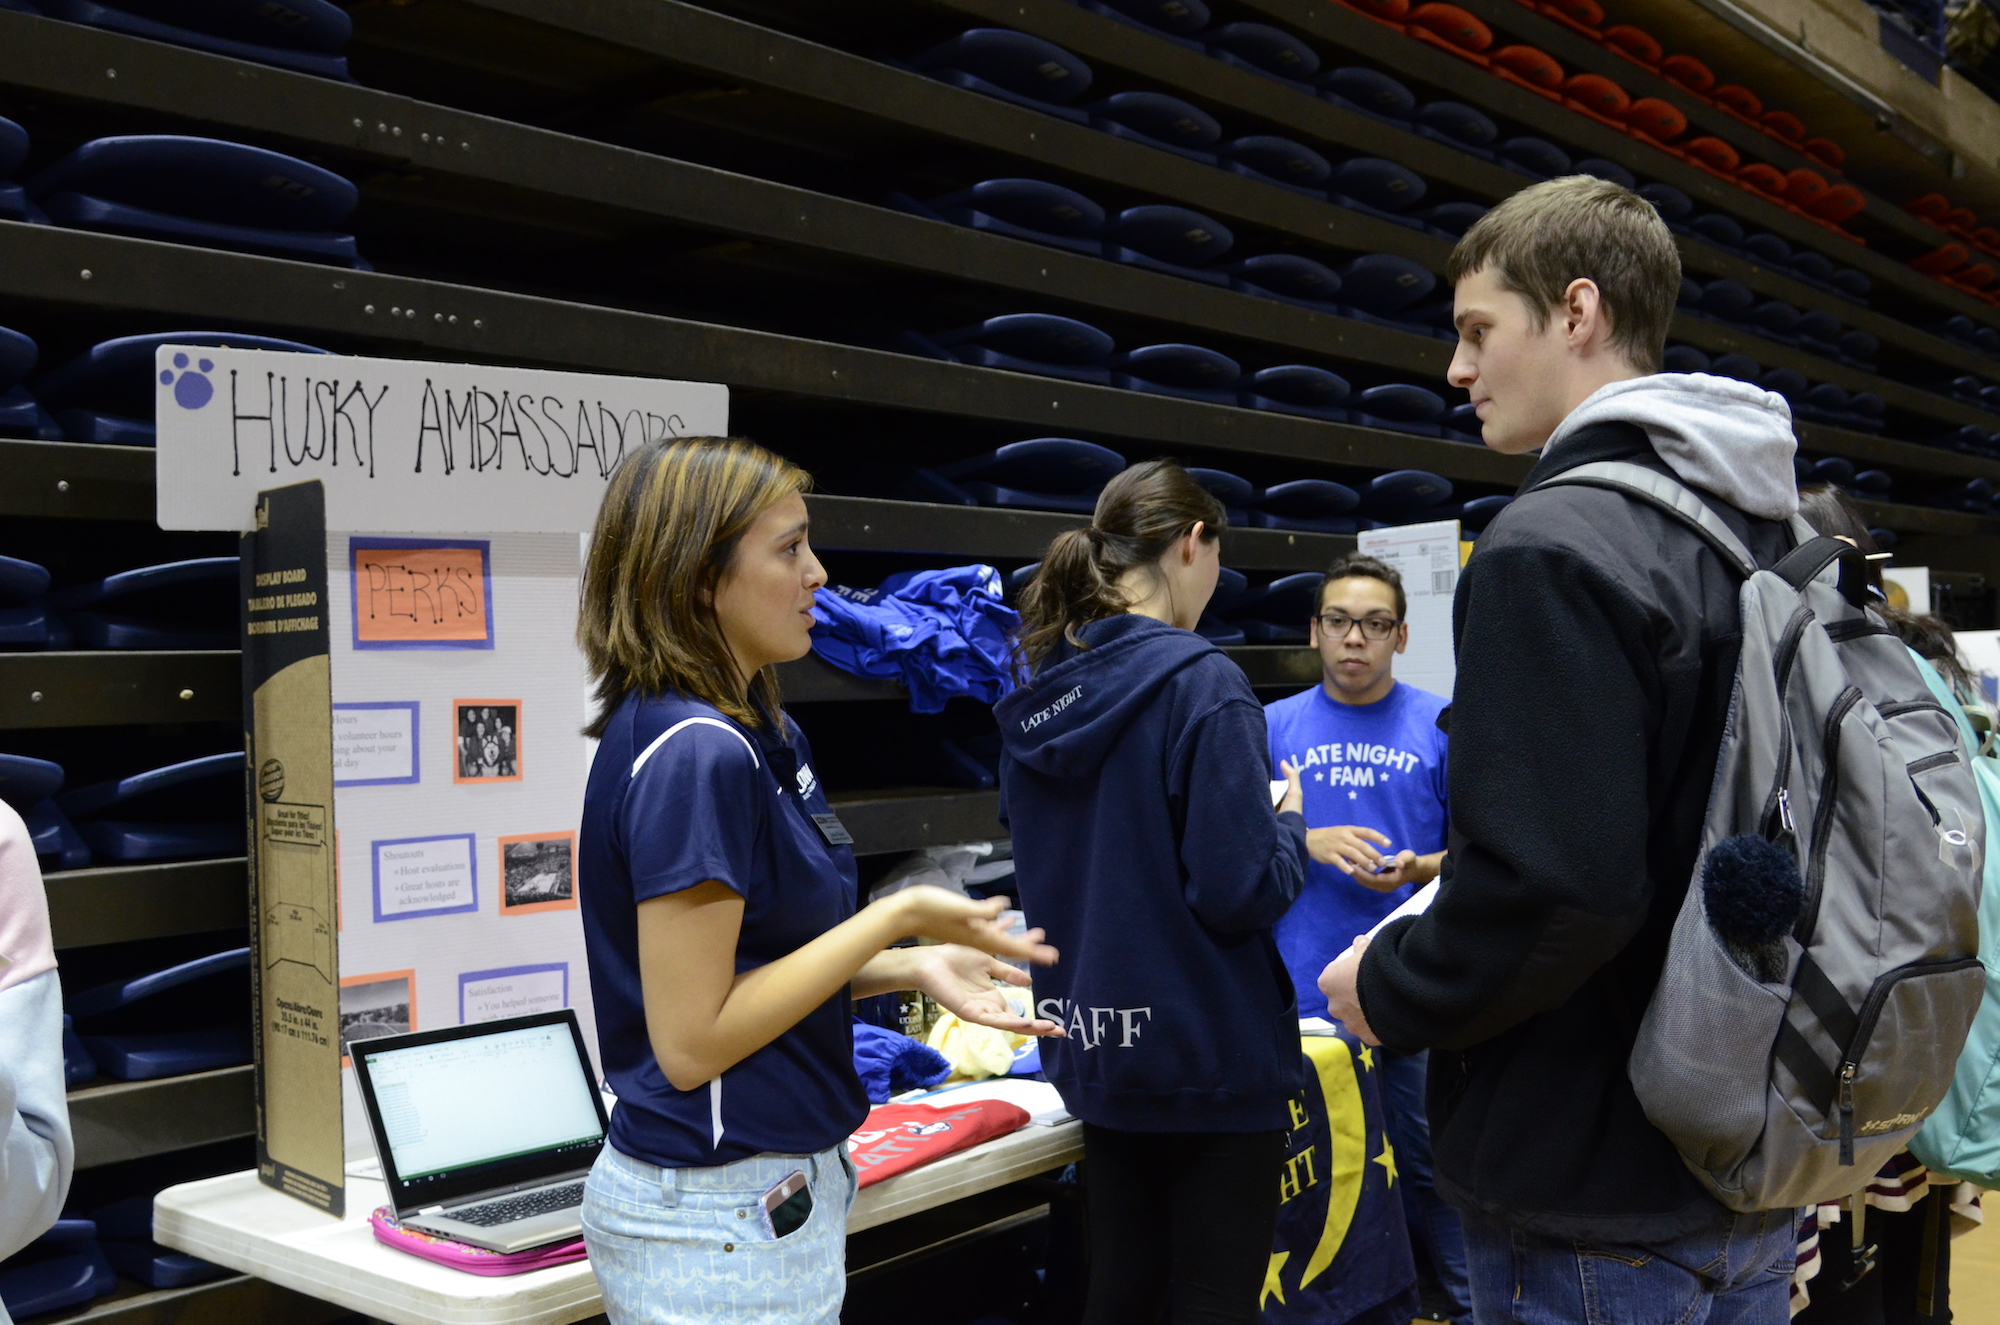 Students went to the Involvement Fair in Gampel to sign up and learn about all the organizations that are offered on campus. The fair ran from 2-7 and there were over 350 programs and organizations there. (Charlotte Lao/The Daily Campus)